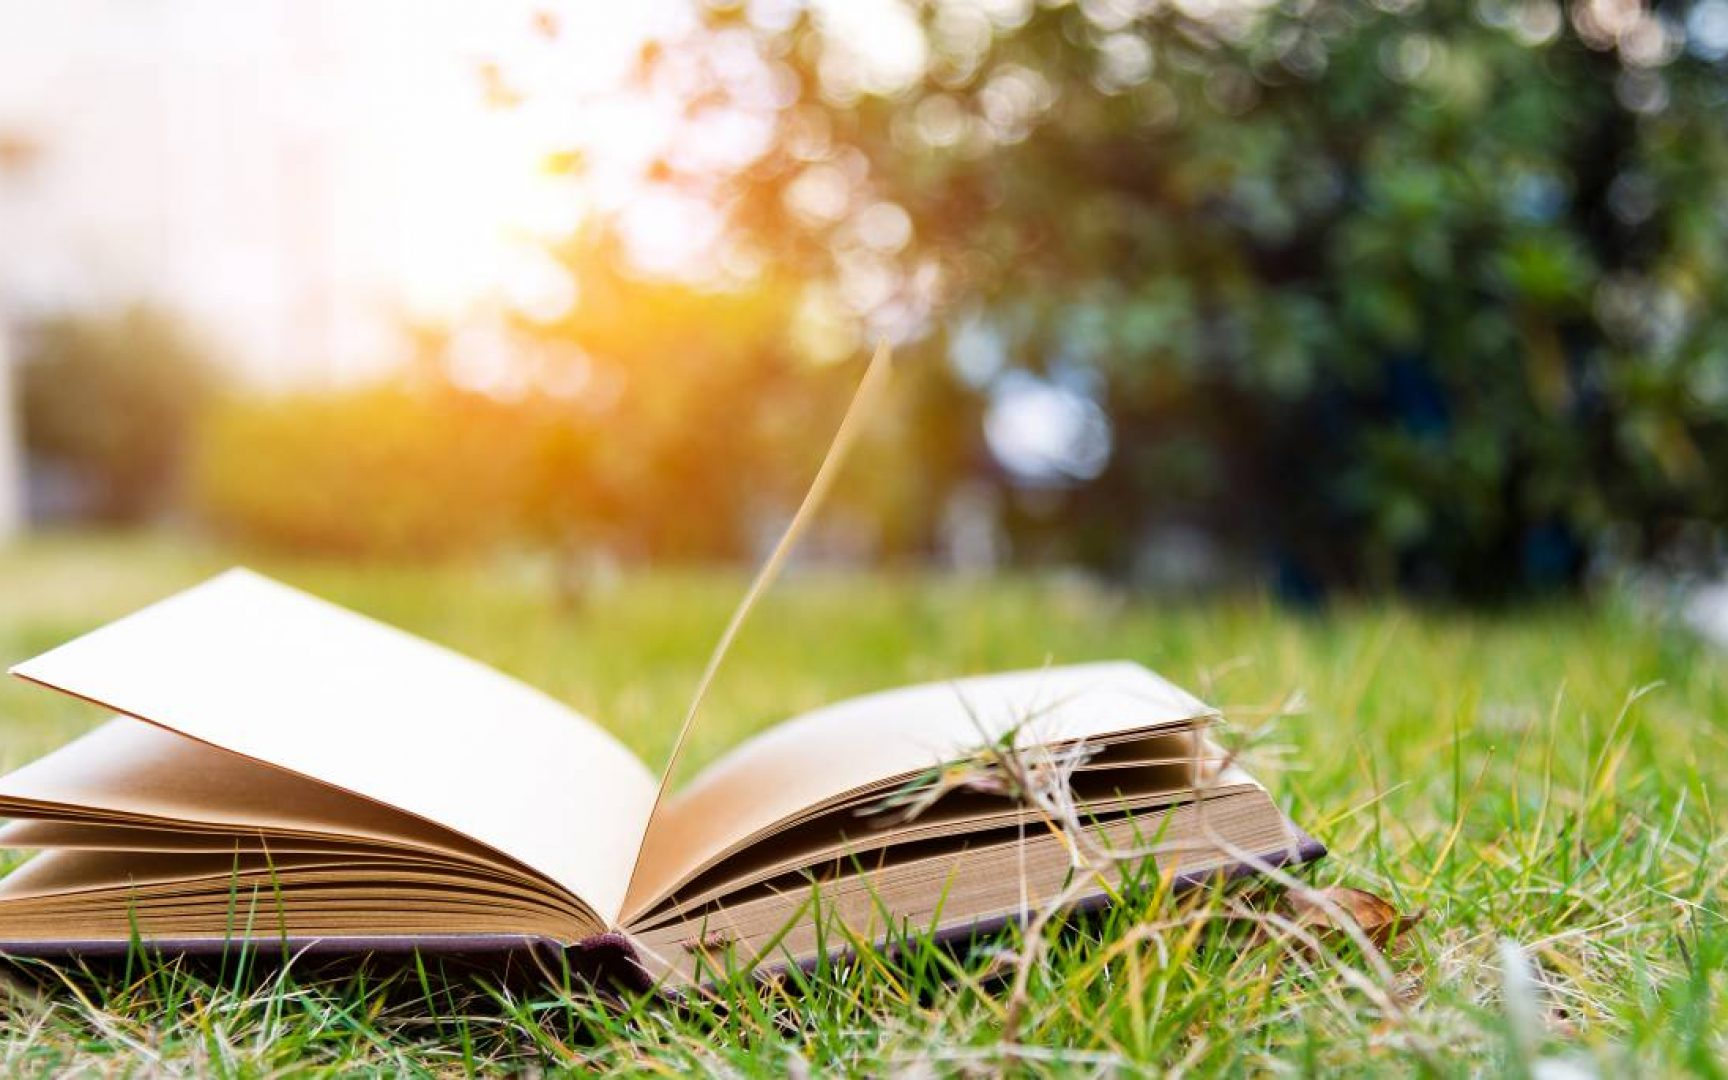 An open book with pages turning laying on the grass with the sun setting in the background